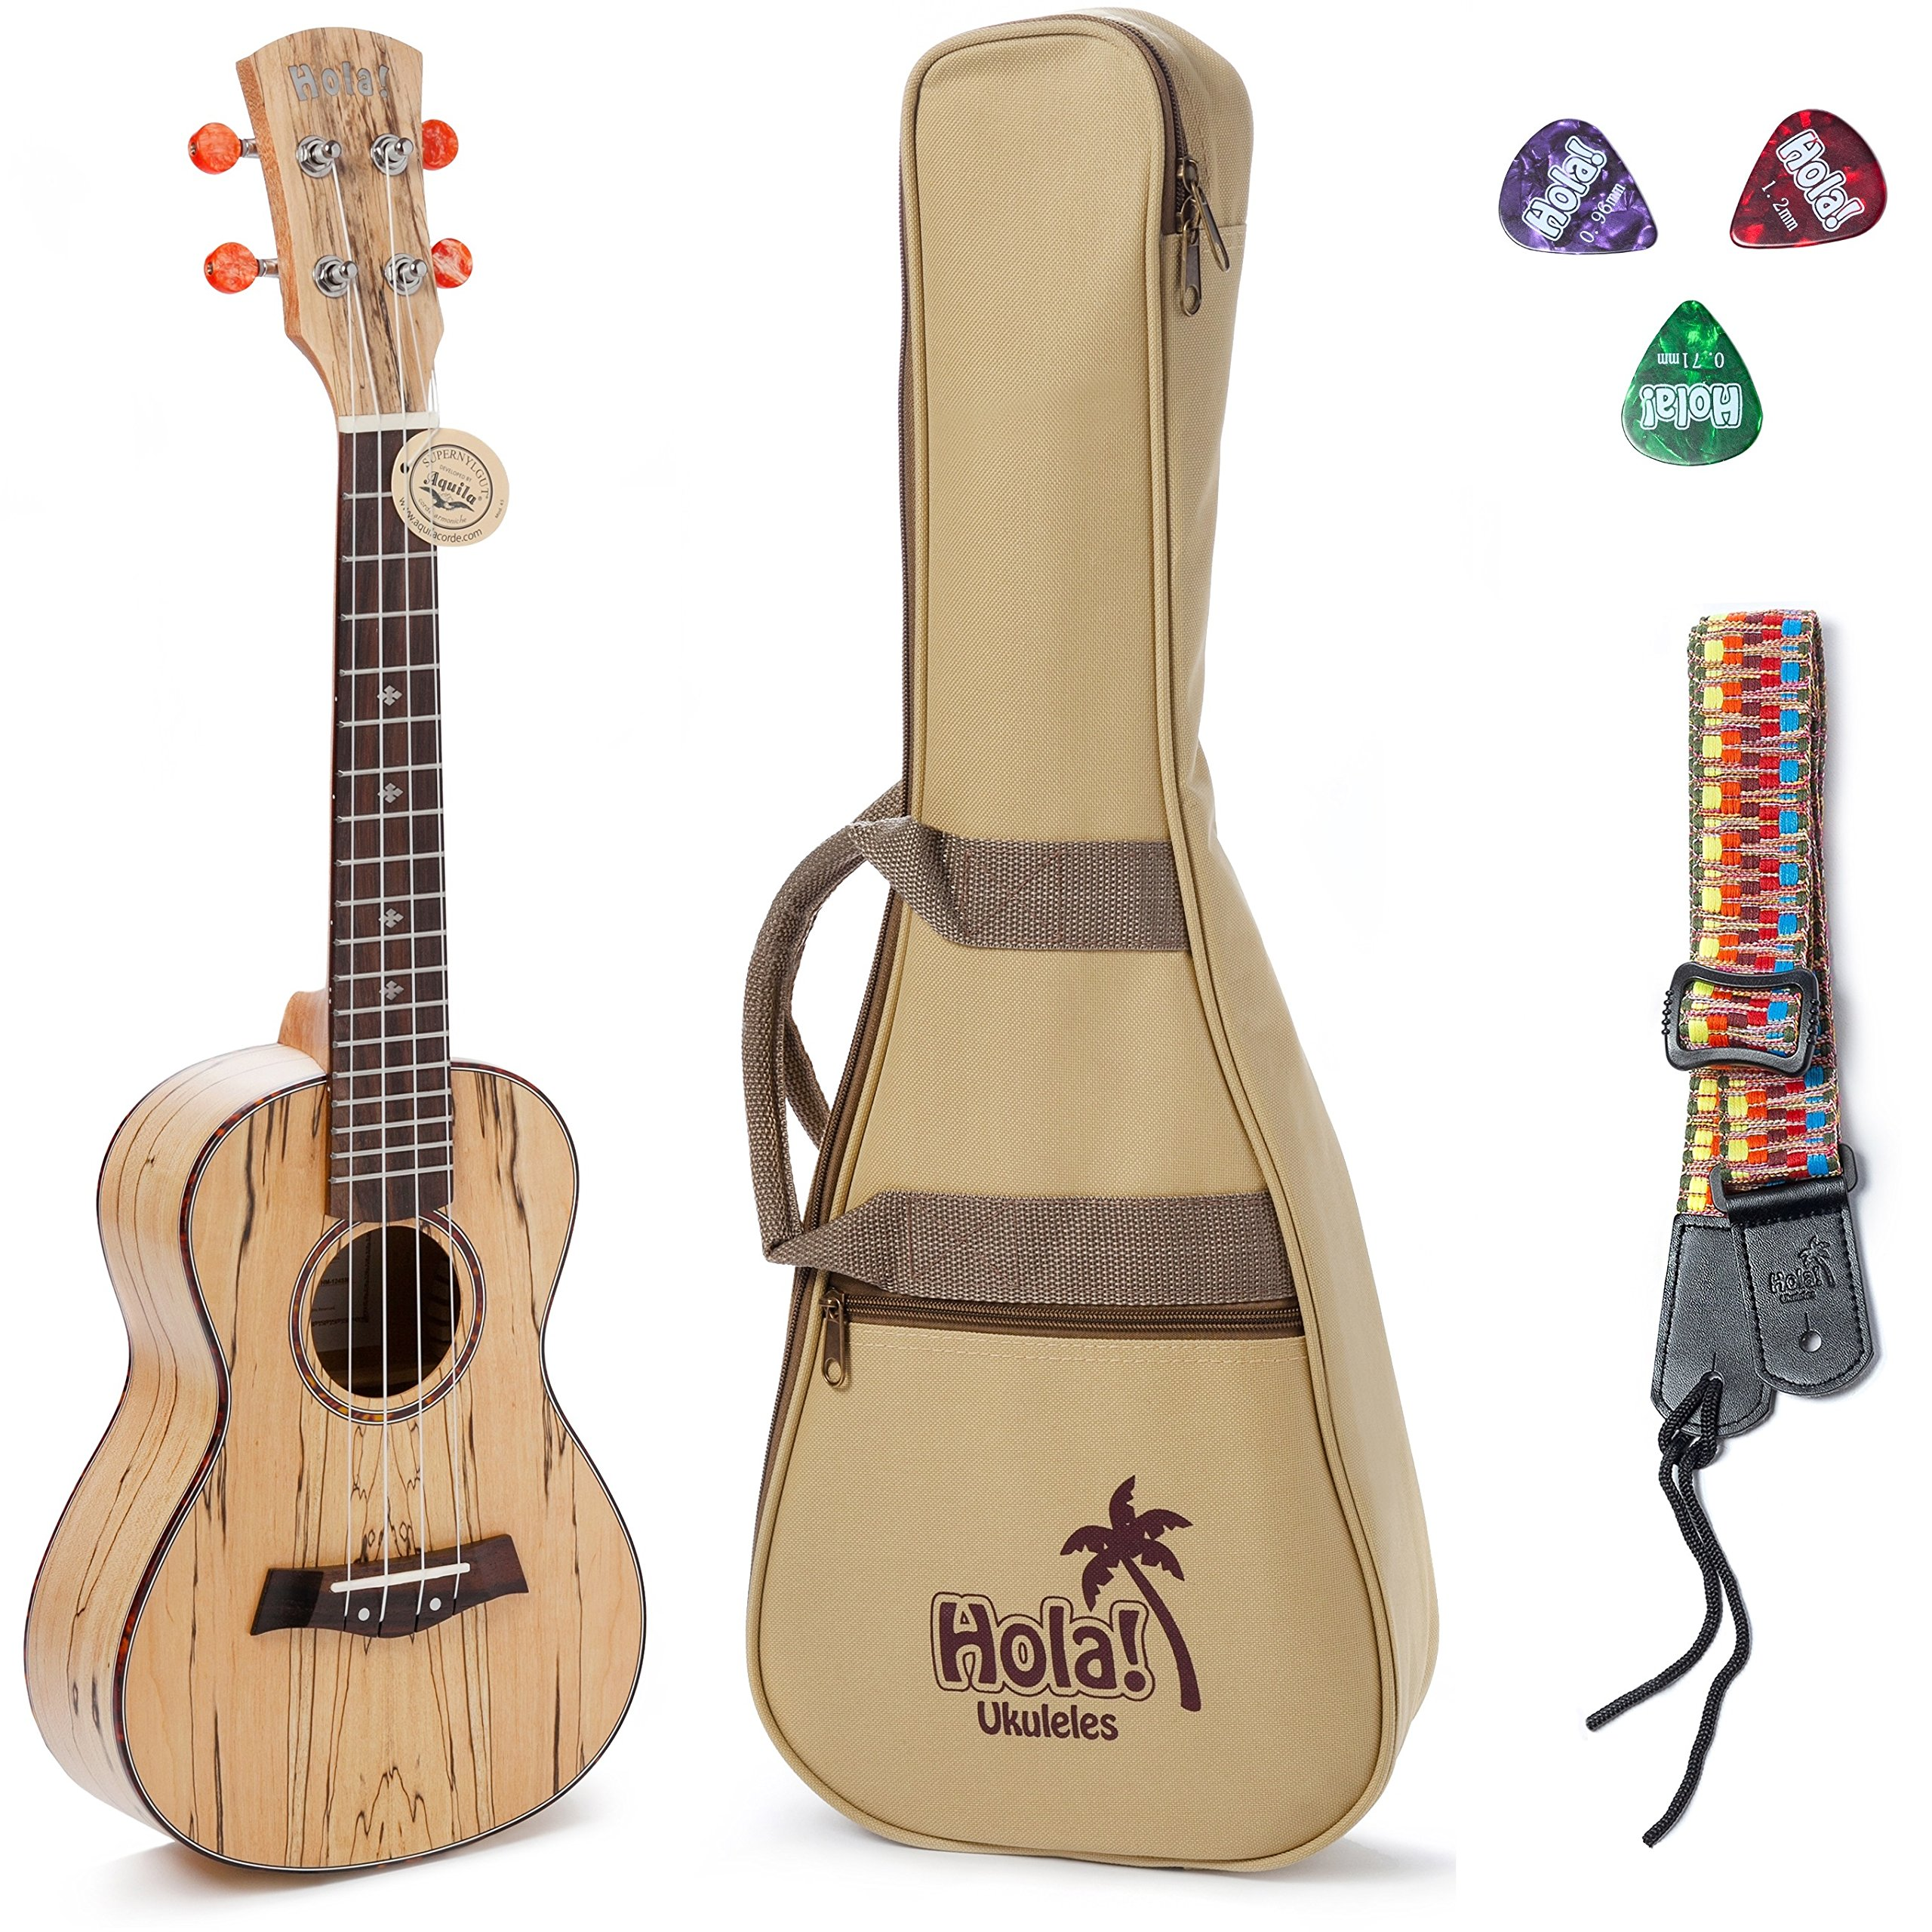 Concert Ukulele Deluxe Series by Hola! Music (Model HM-124SM+), Bundle Includes: 24 Inch Spalted Maple Ukulele with Aquila Nylgut Strings Installed, Padded Gig Bag, Strap and Picks - Limited Edition